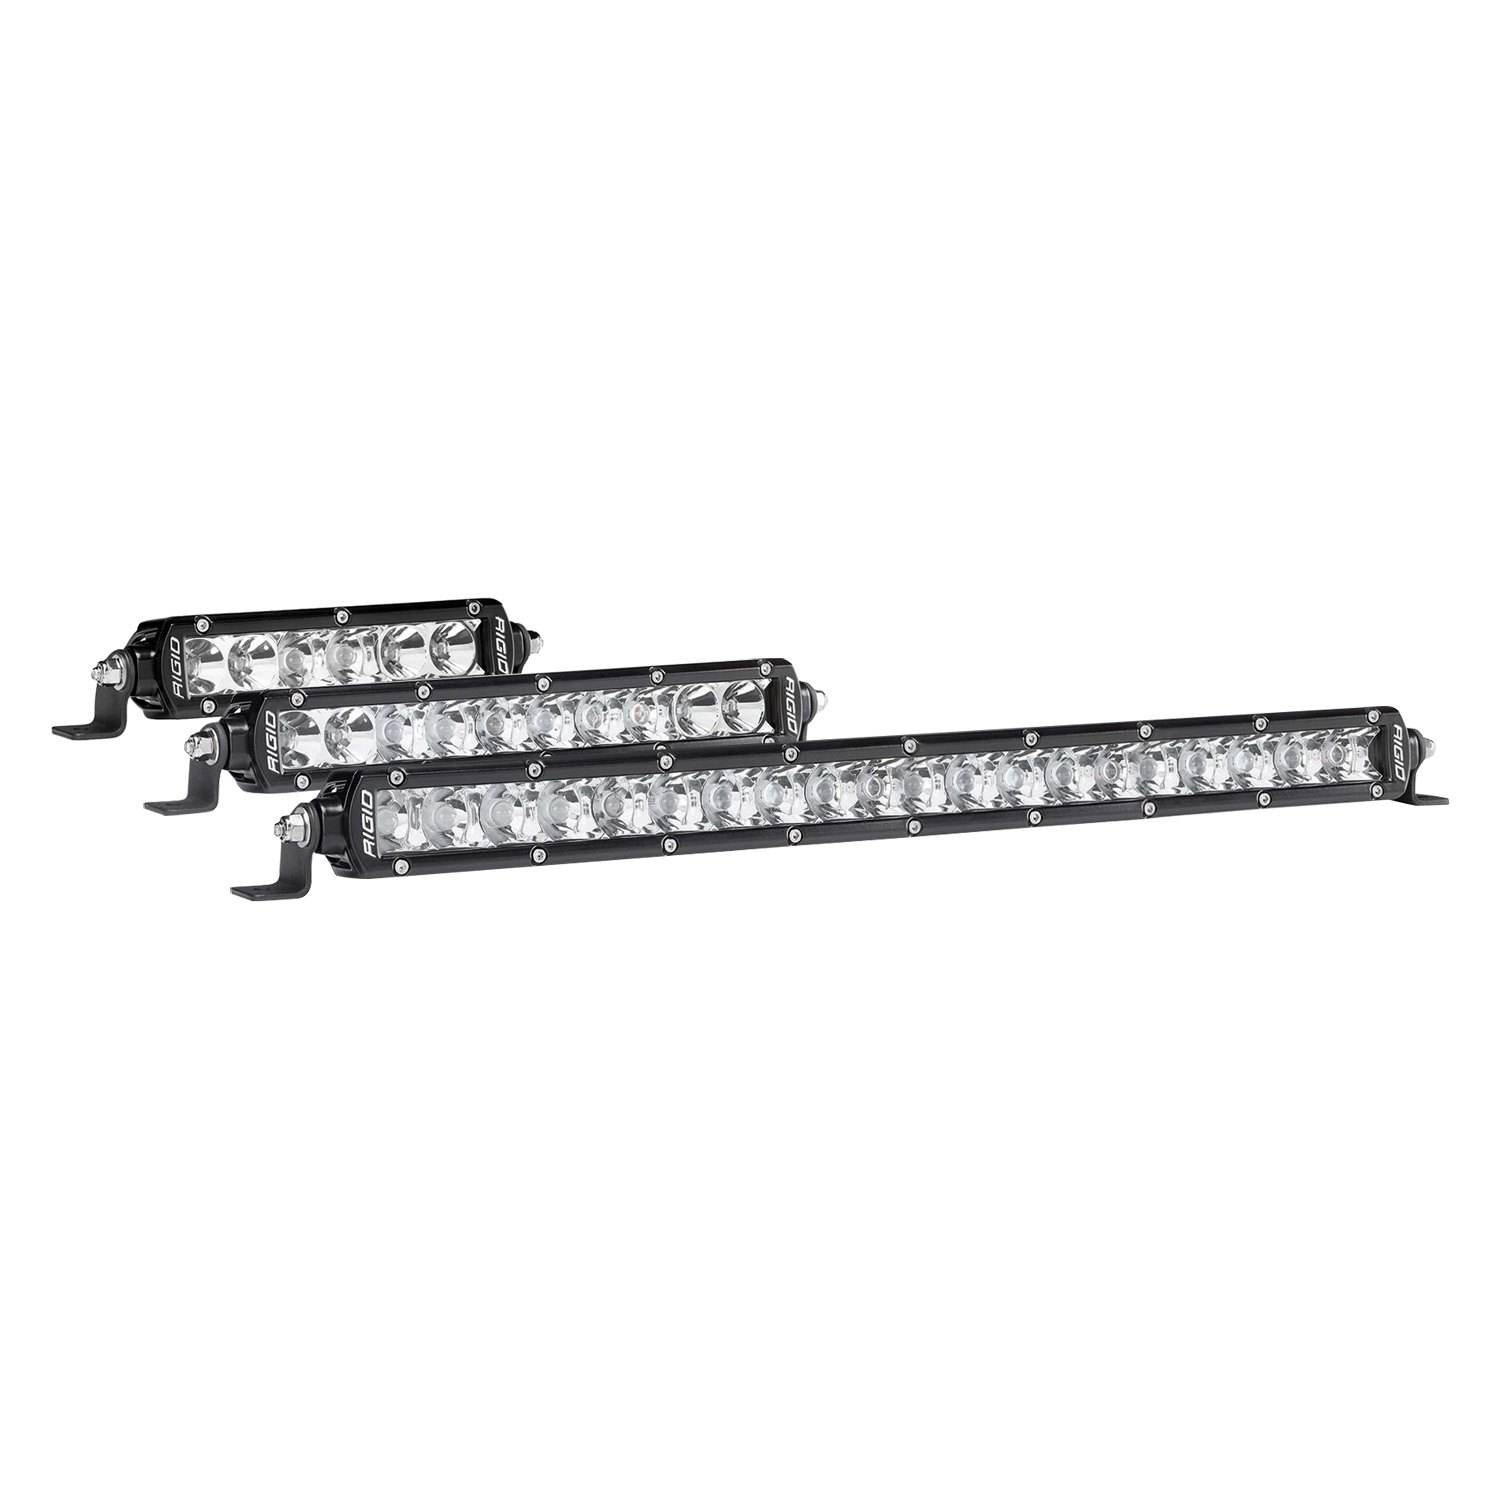 Rigid industries sr series 10 359w amber led light bar rigid industries sr series led light bars aloadofball Images